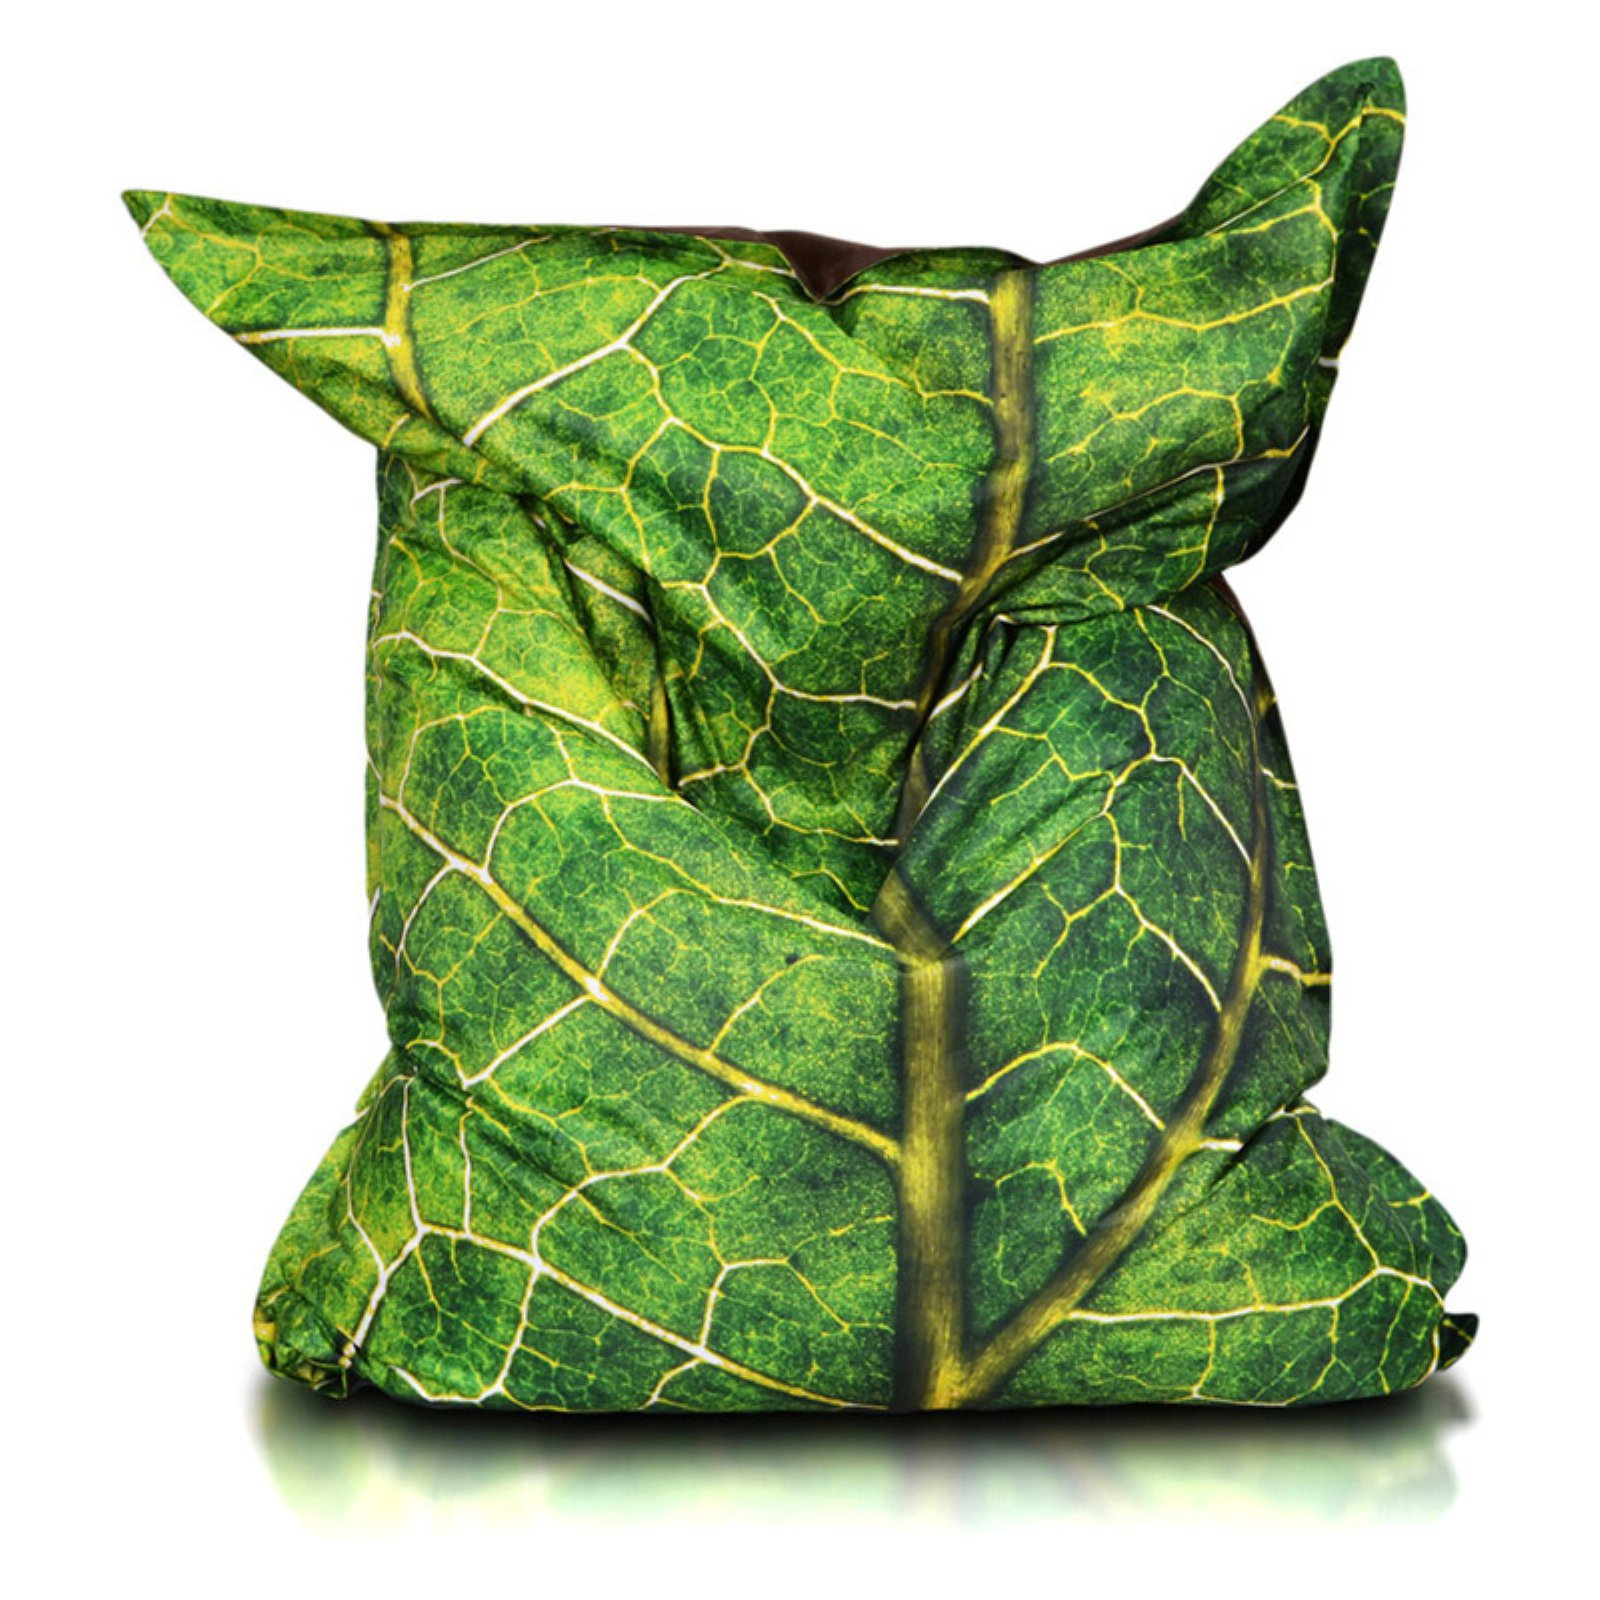 Turbo Beanbags Pillow Style Premium Large Bean Bag Chair - Green Leaf Print